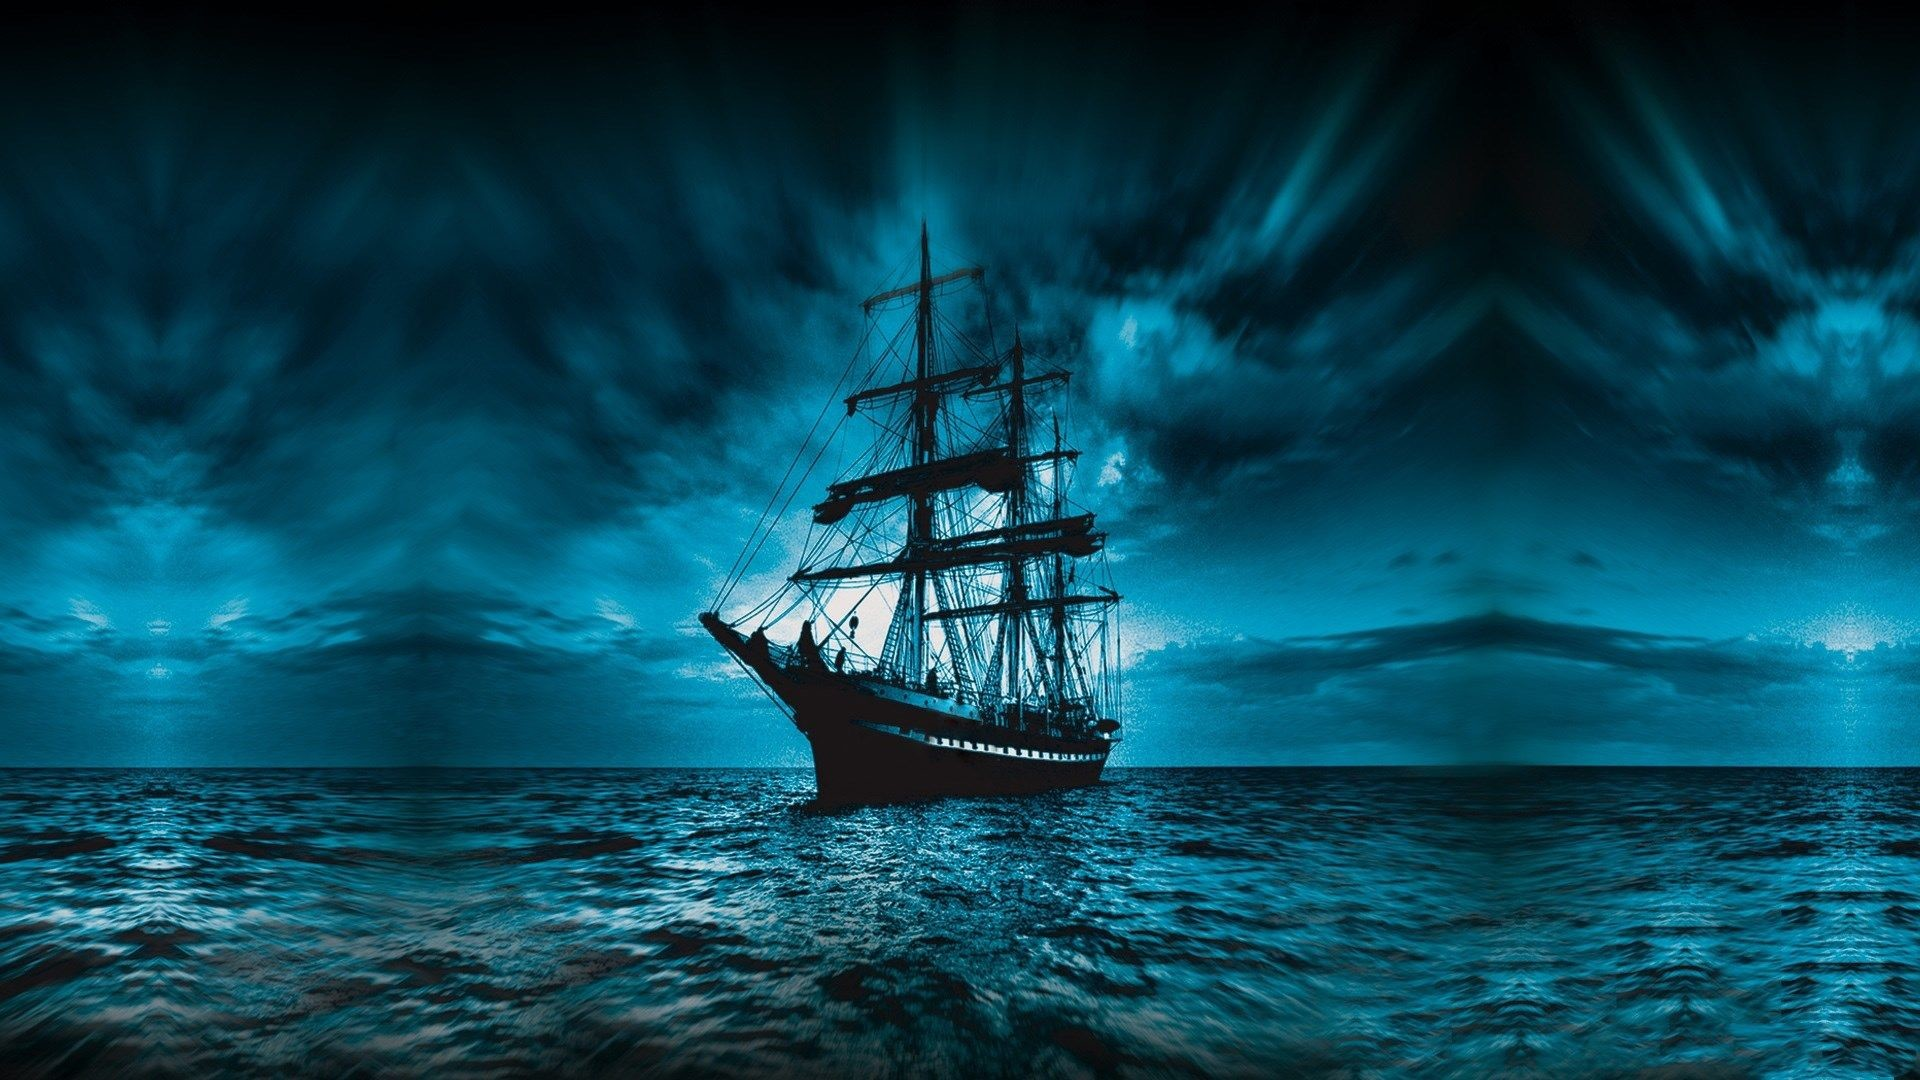 Res: 1920x1080, sailing ship wallpaper hd backgrounds images,  (370 kB)